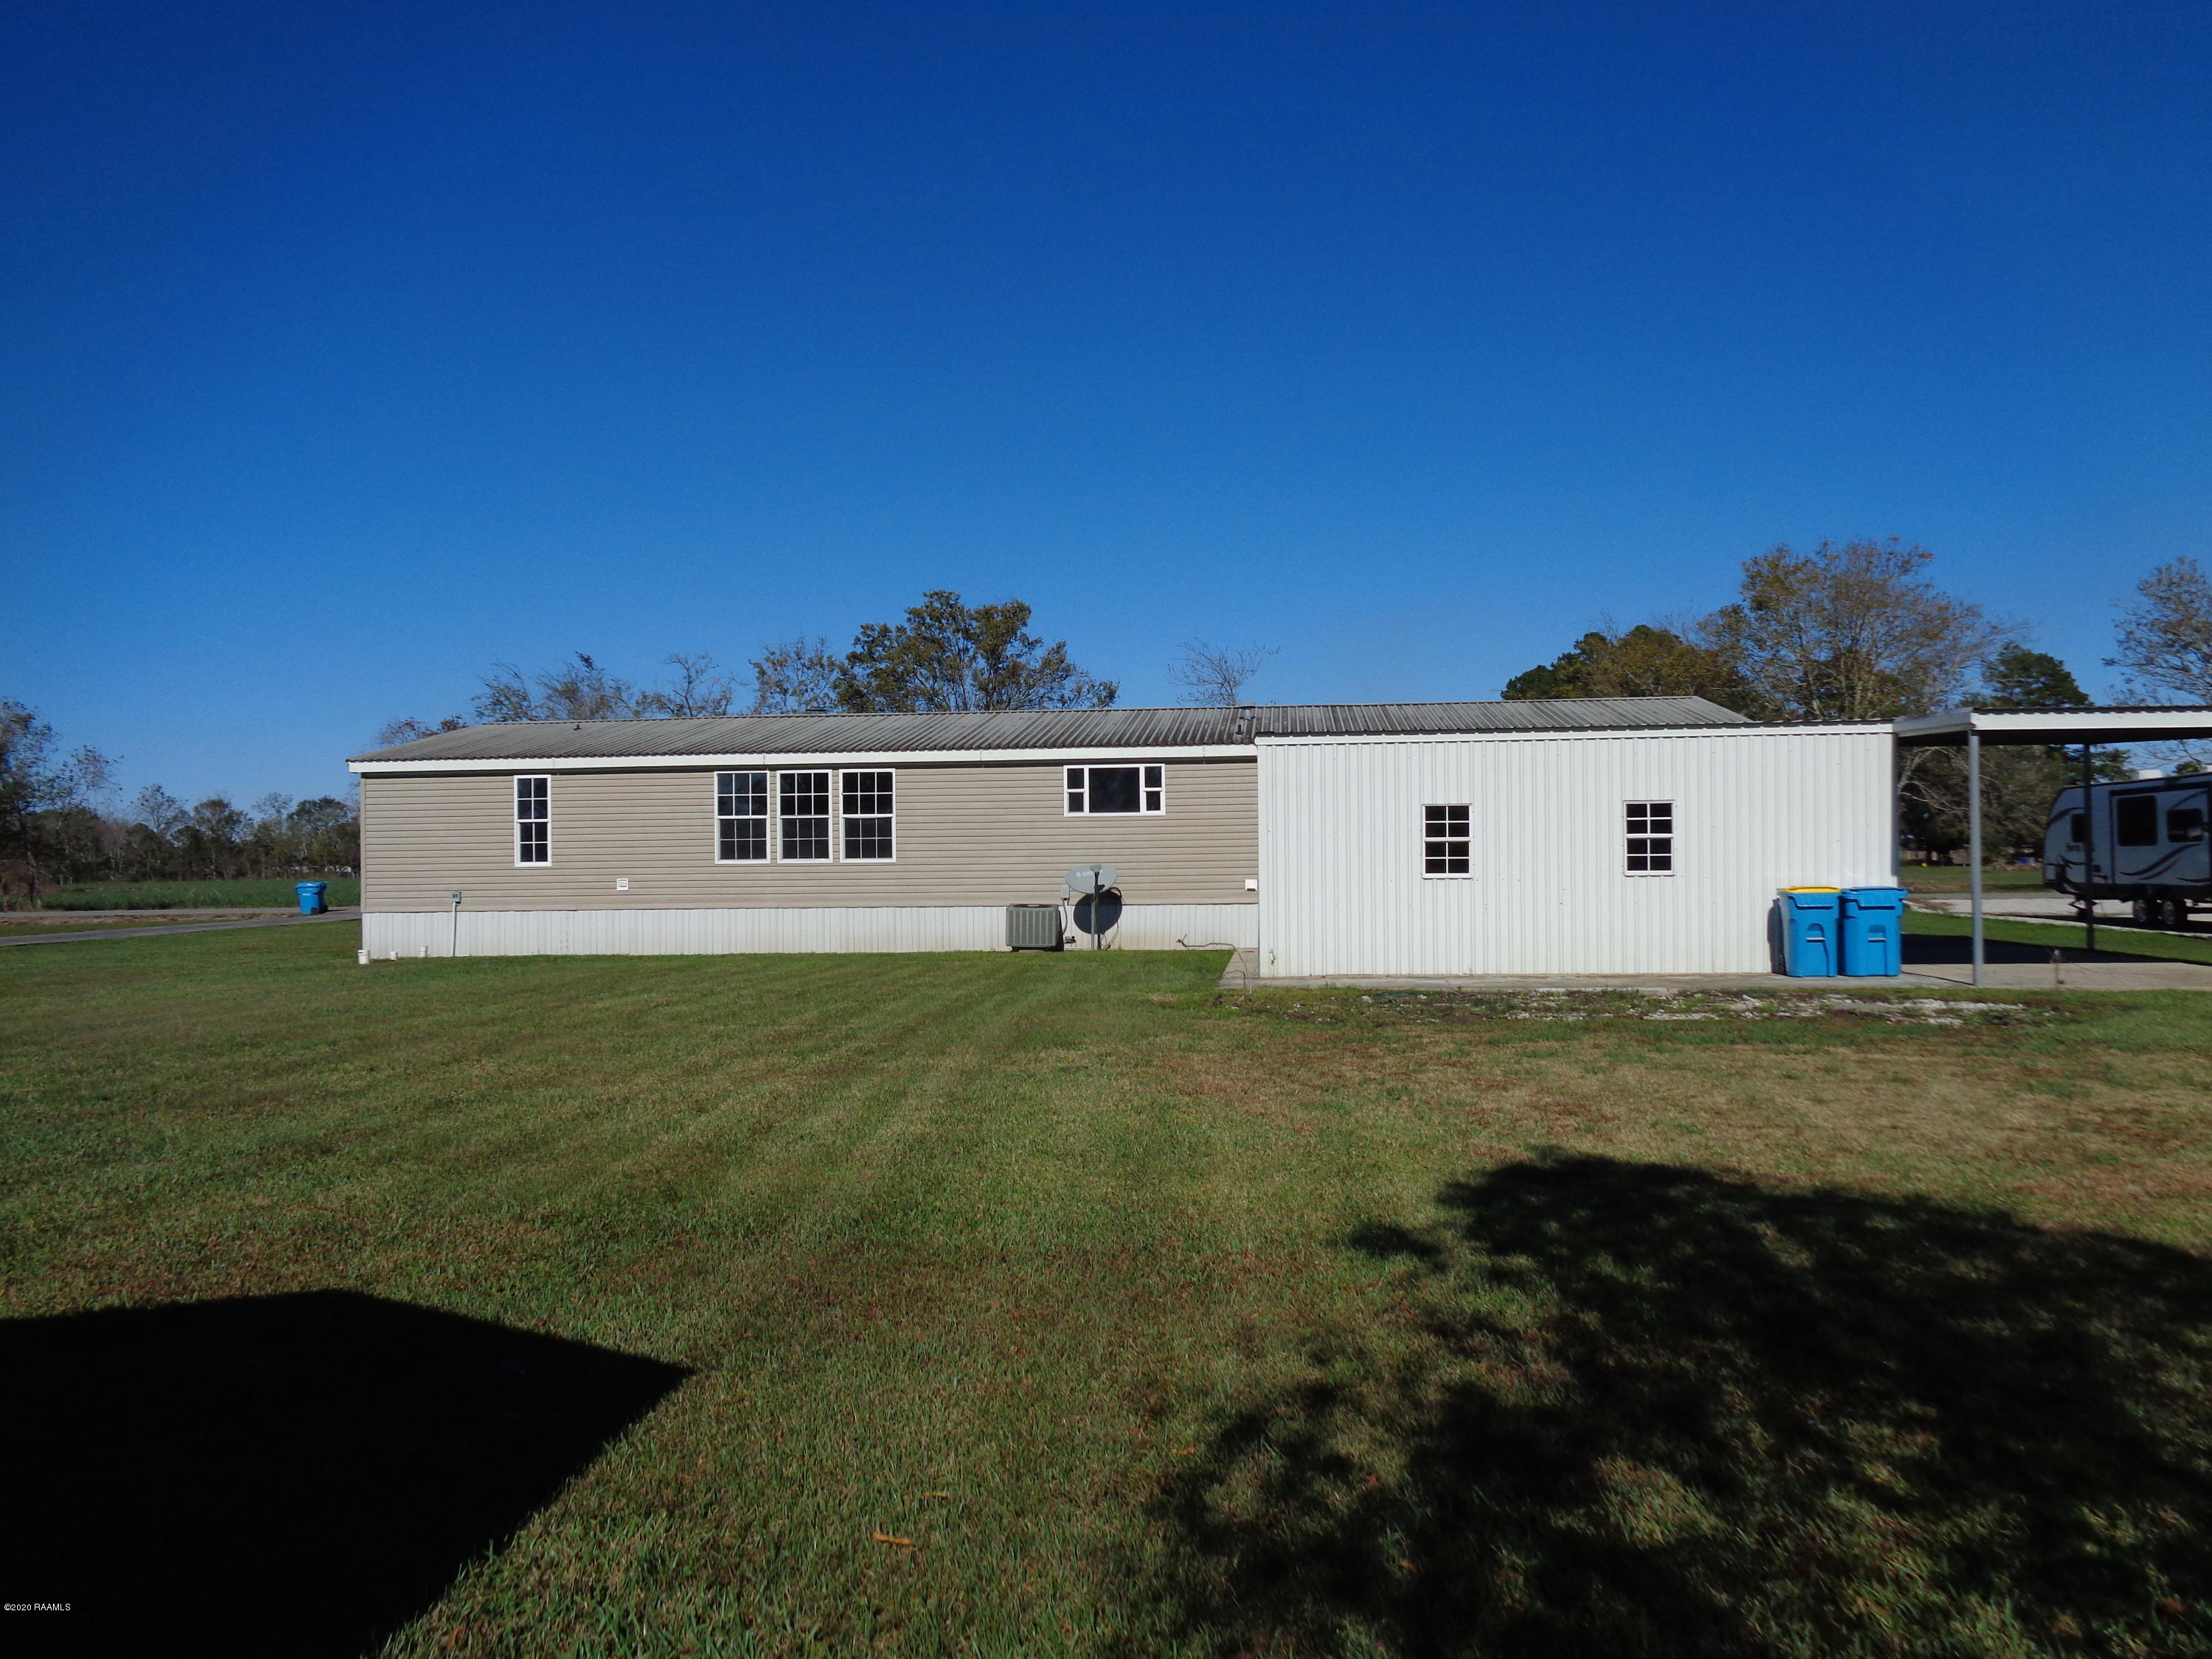 1268 Wilfred Champagne, St. Martinville, LA 70582 Photo #11